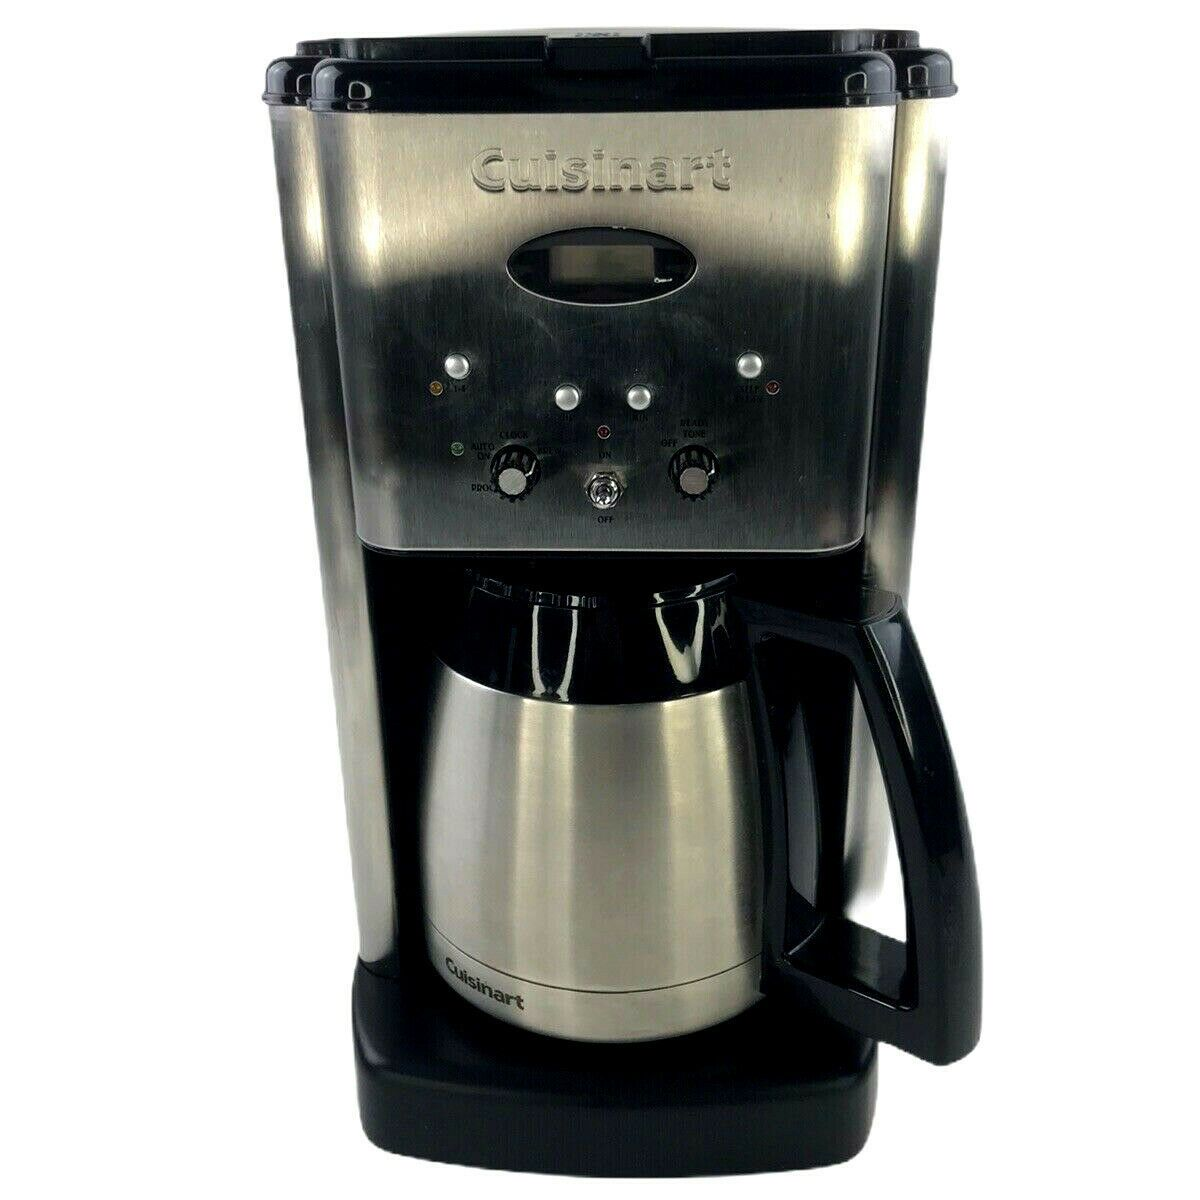 Cusinart Brew Central Thermal Coffeemaker 1 New Filter Dcc 1400 Series Tested Ebay In 2020 Coffee Maker Cuisinart Coffee Maker Single Cup Coffee Maker